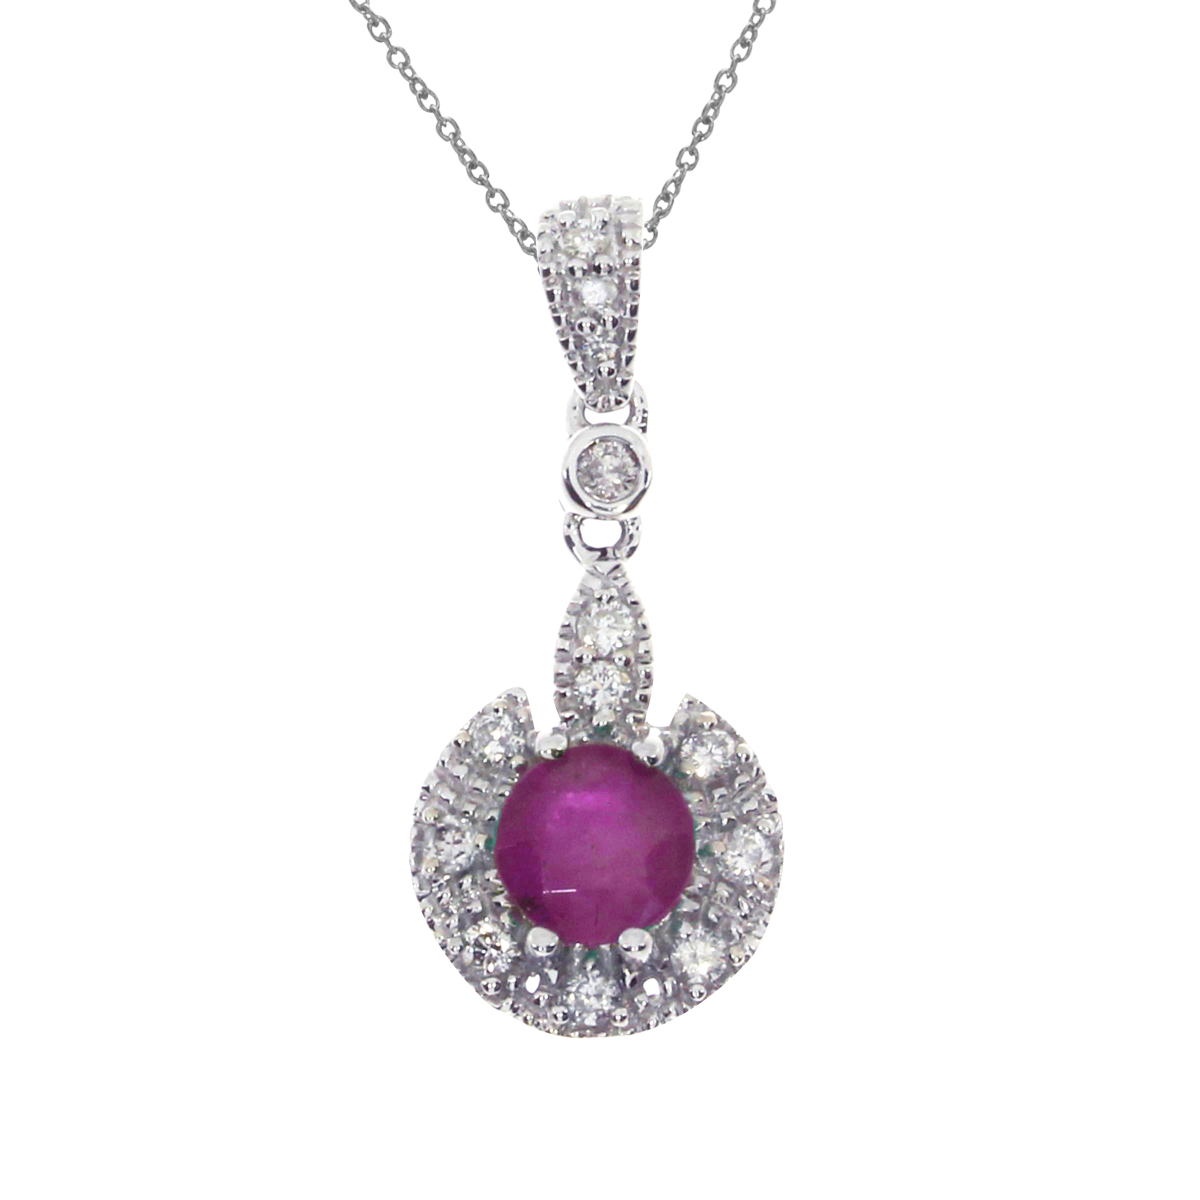 5 mm round genuine rubies pendant set in 14k white gold with .16 ct diamonds.